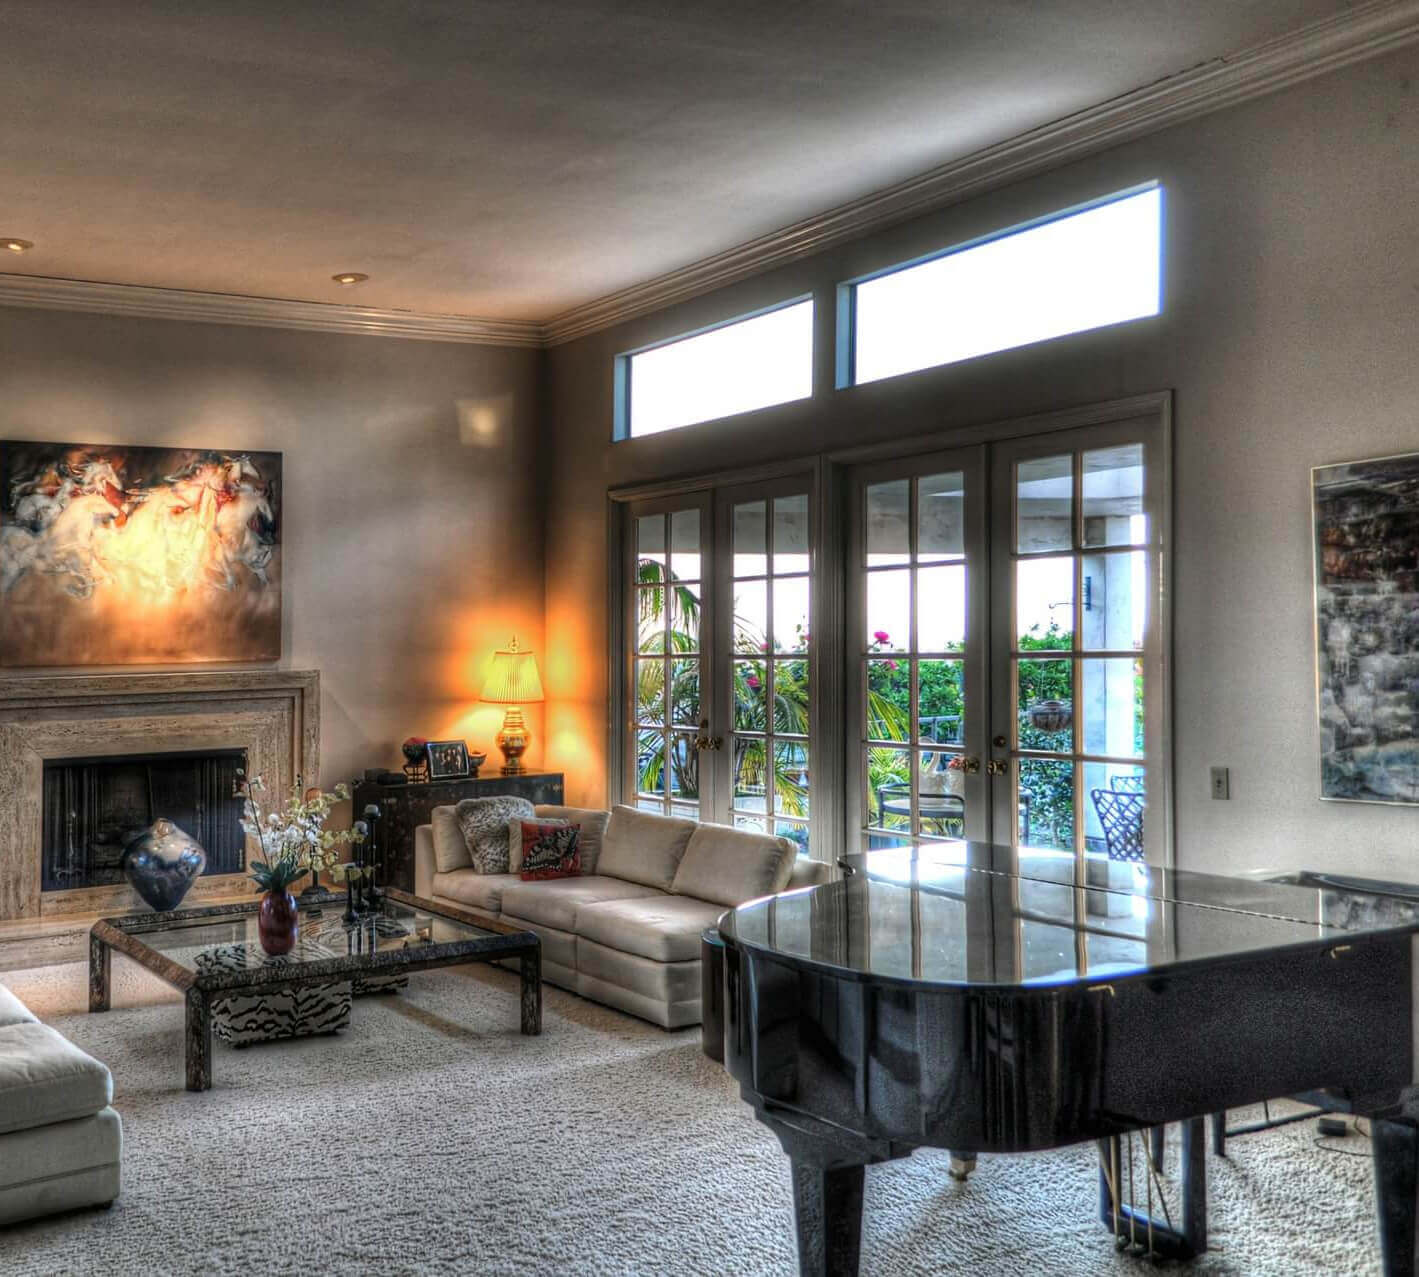 Luxurious living-room with grand piano, fireplace, and large french doors